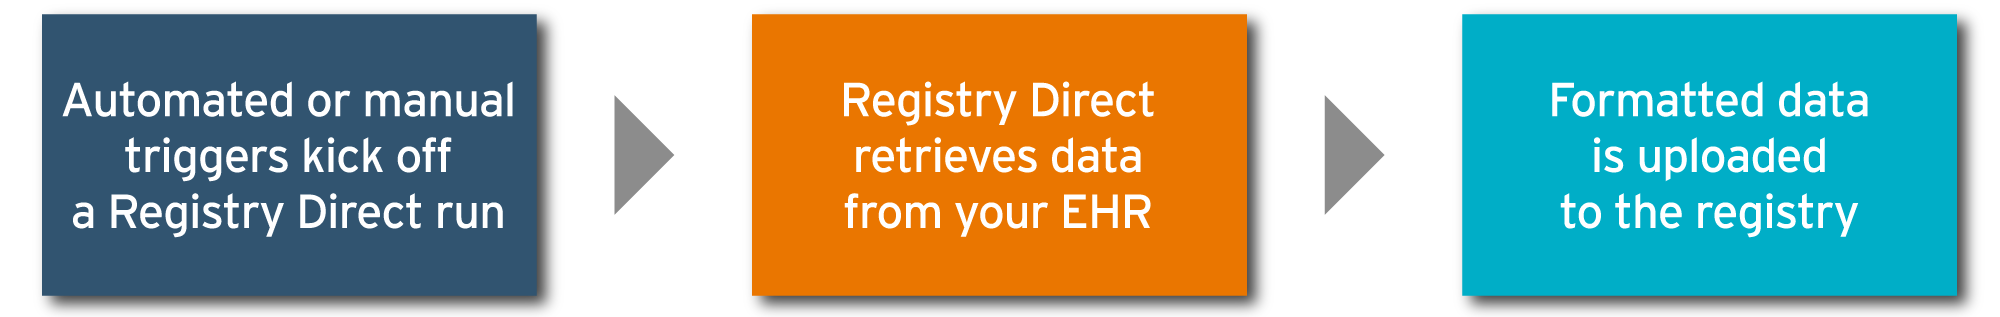 Registry Direct Data Transmission Process